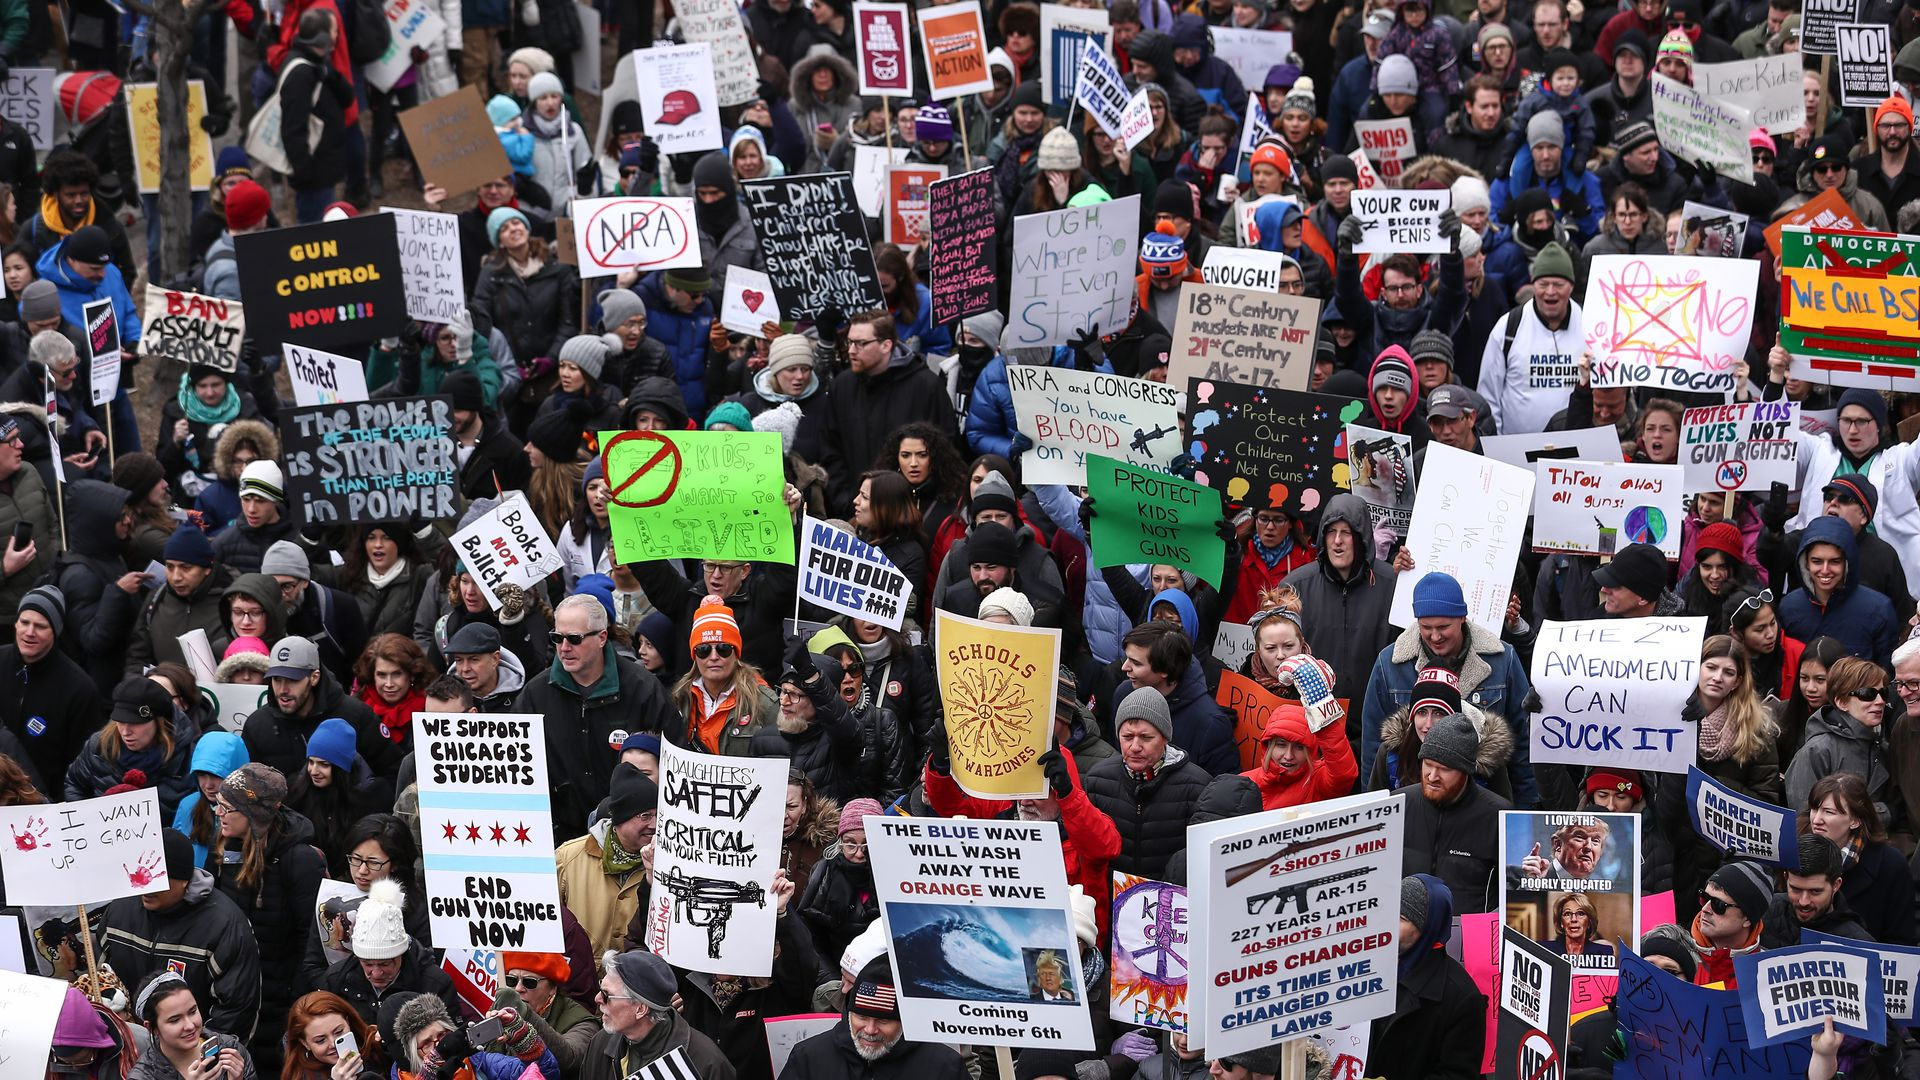 March for Our Lives rally with a crowd of people in the streets of Chicago